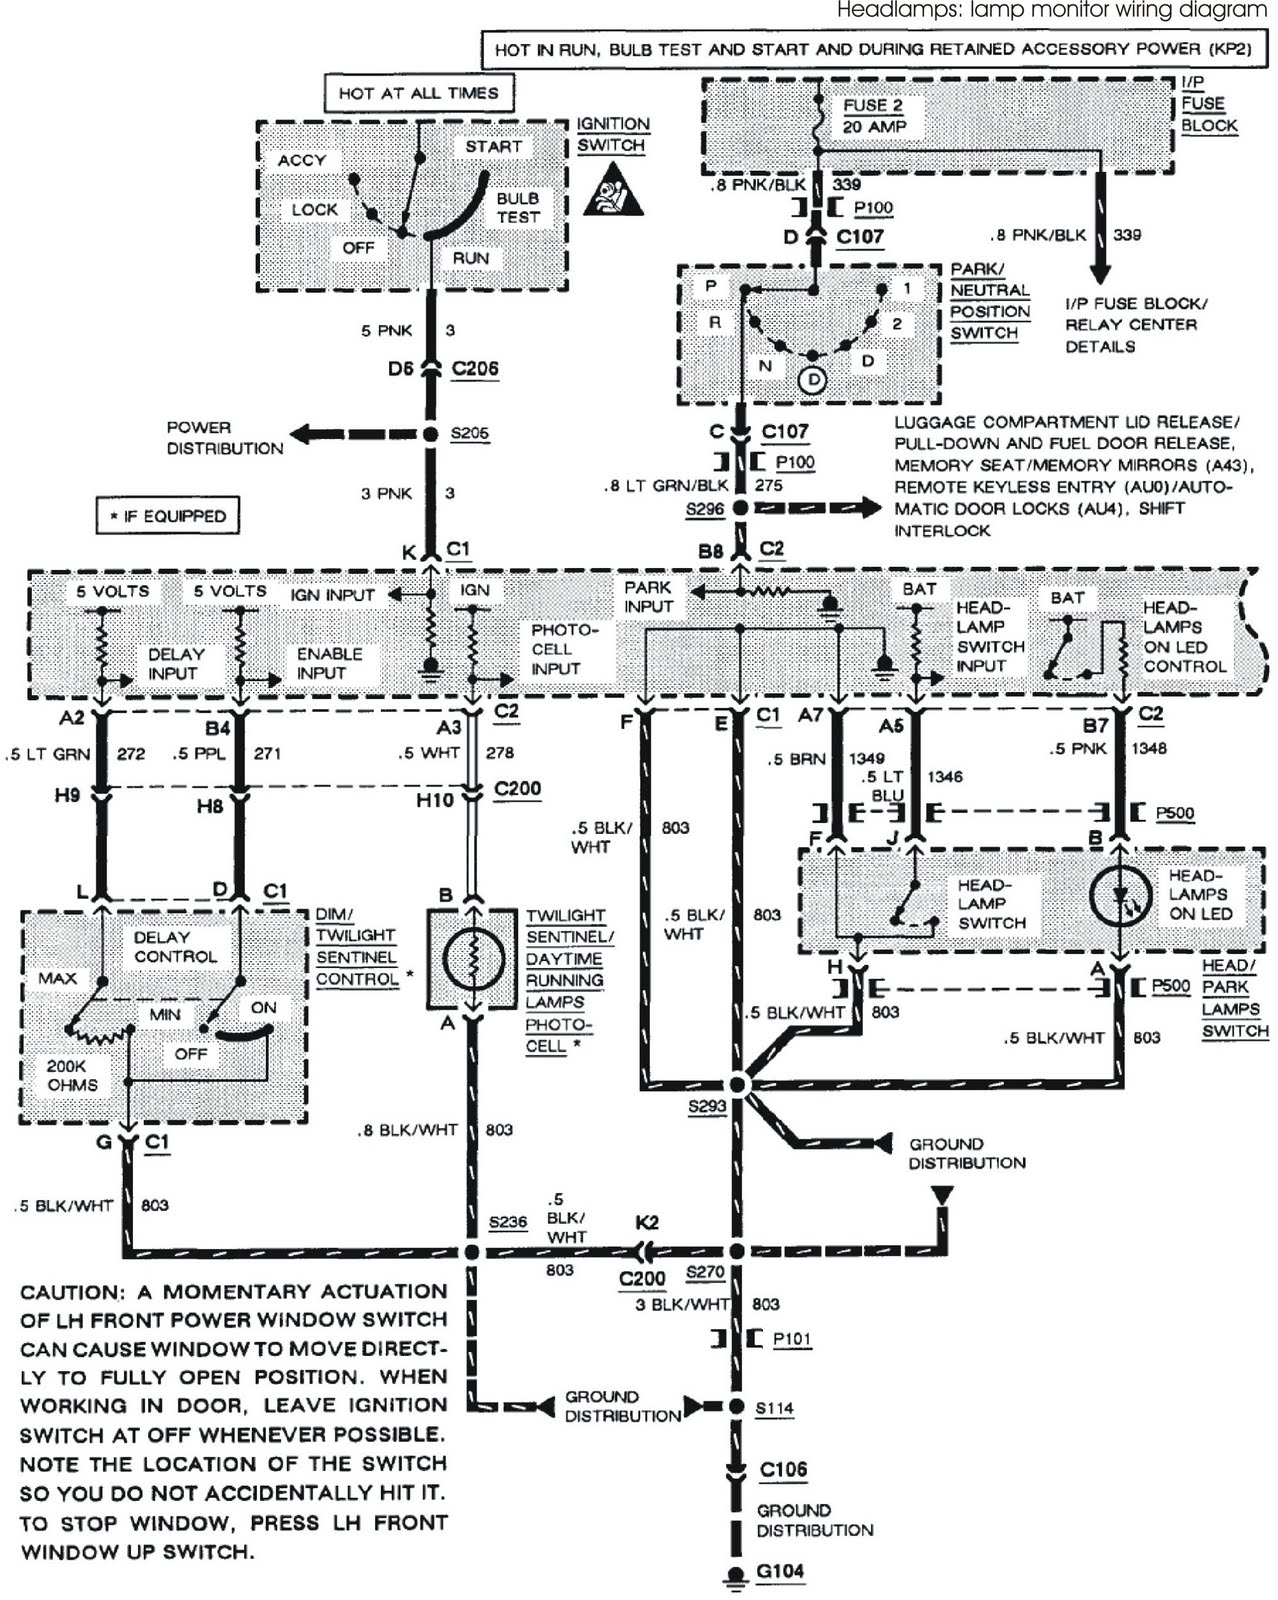 1993 Buick Park Avenue System Wiring Diagrams Headlamps